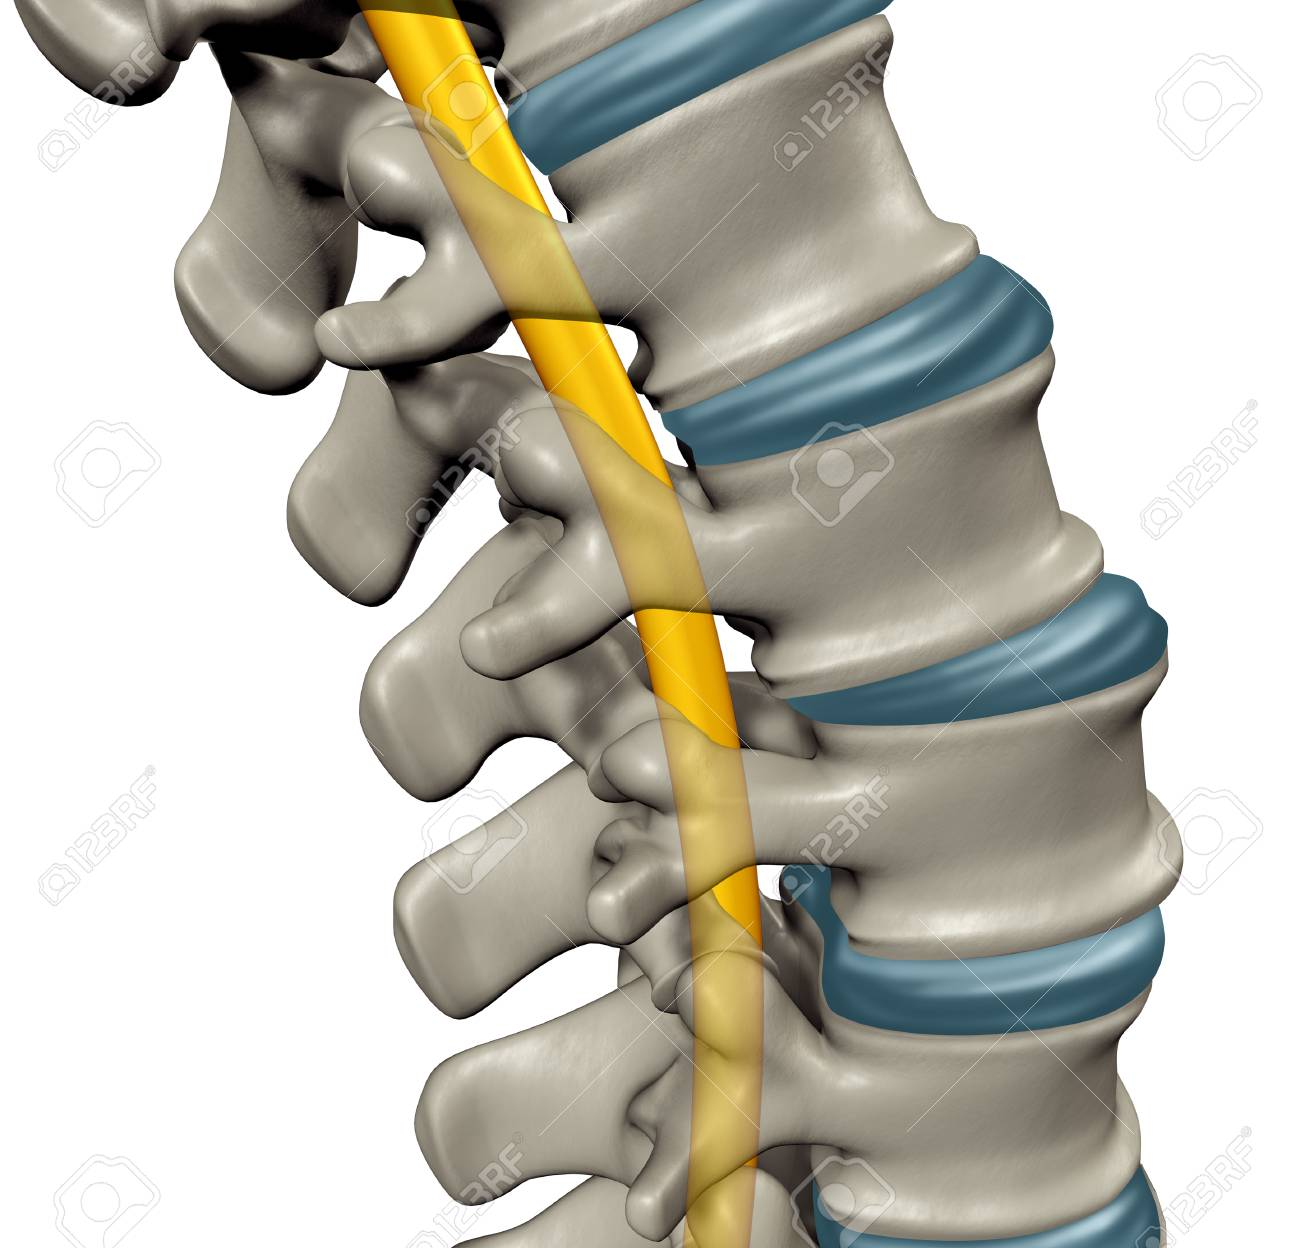 Spinal Cord Anatomy Concept As A Medical Symbol For The Human